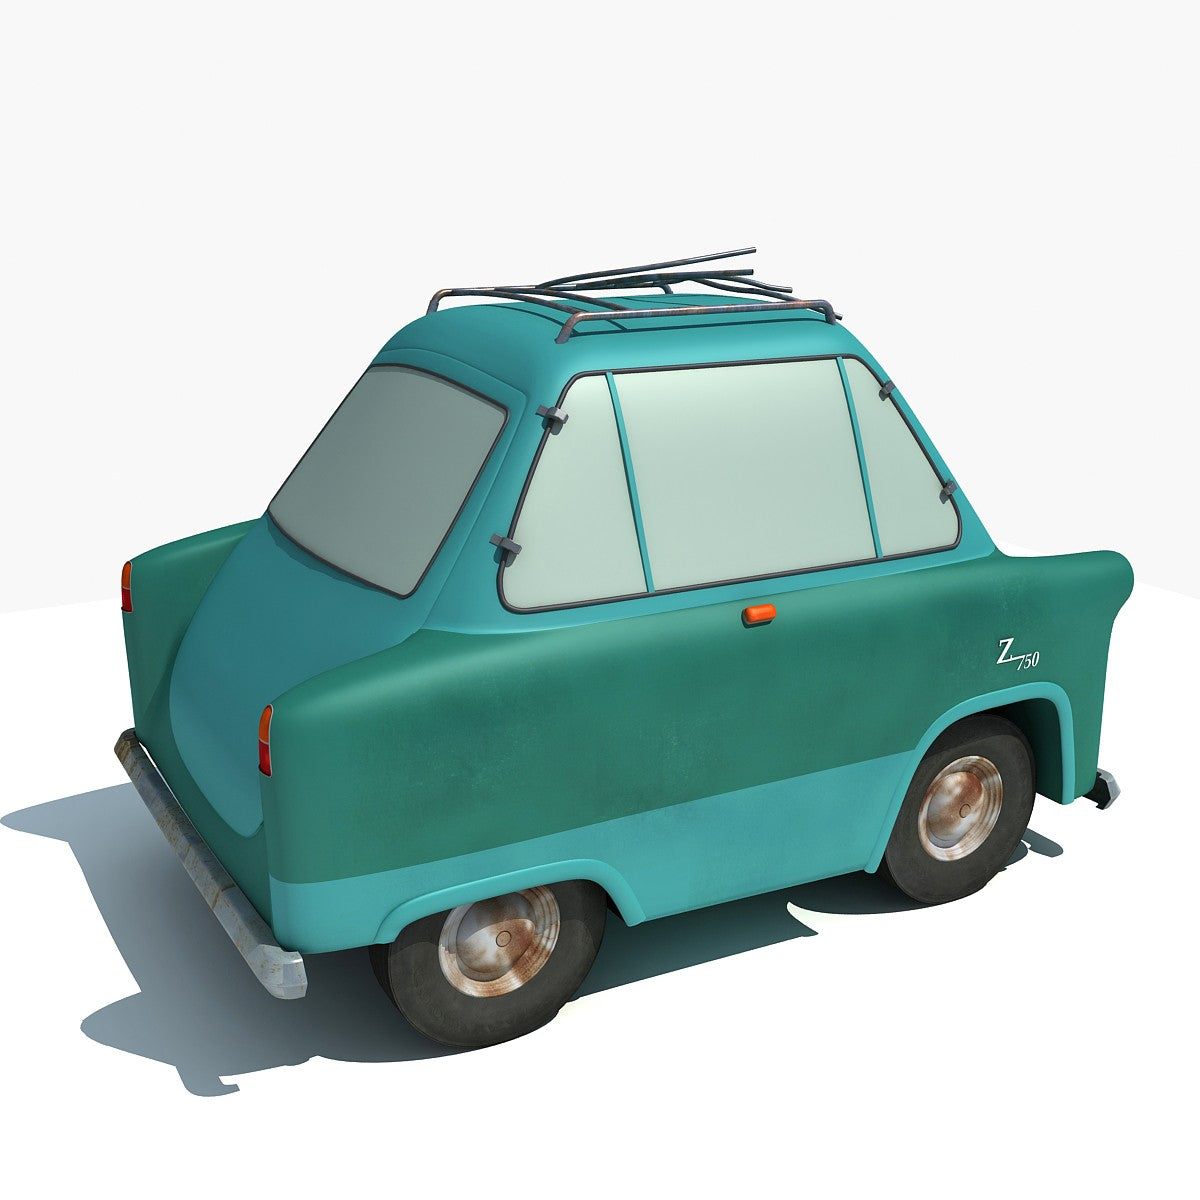 Disney Pixar Cars 3D Models